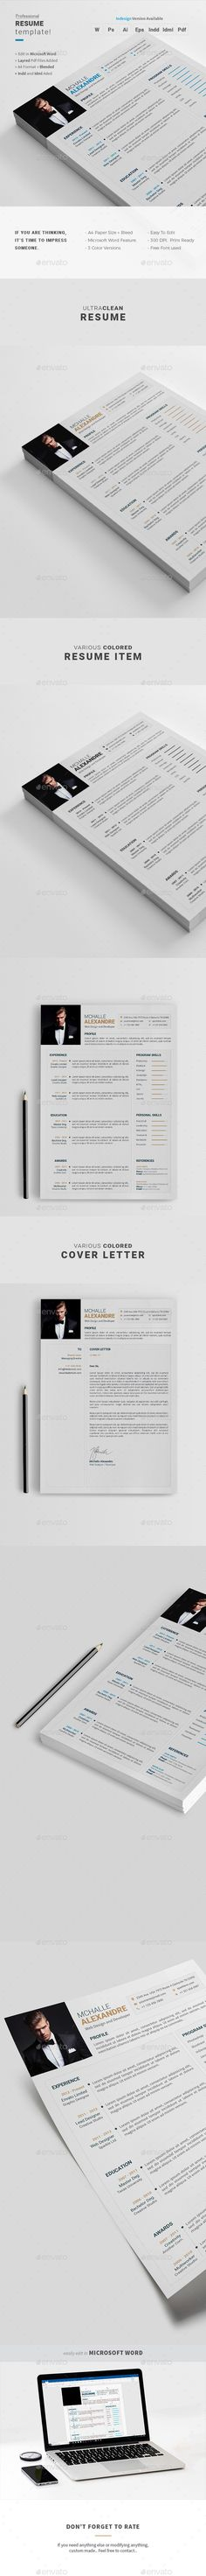 Buy Resume by Vixendre on GraphicRiver. Professional Resume / CV Template with super modern and professional look. Elegant page designs are easy to use and c. Best Resume Template, Resume Design Template, Flyer Design Templates, Cv Template, Portfolio Professional, Professional Resume, Cv Design, Page Design, Graphic Design